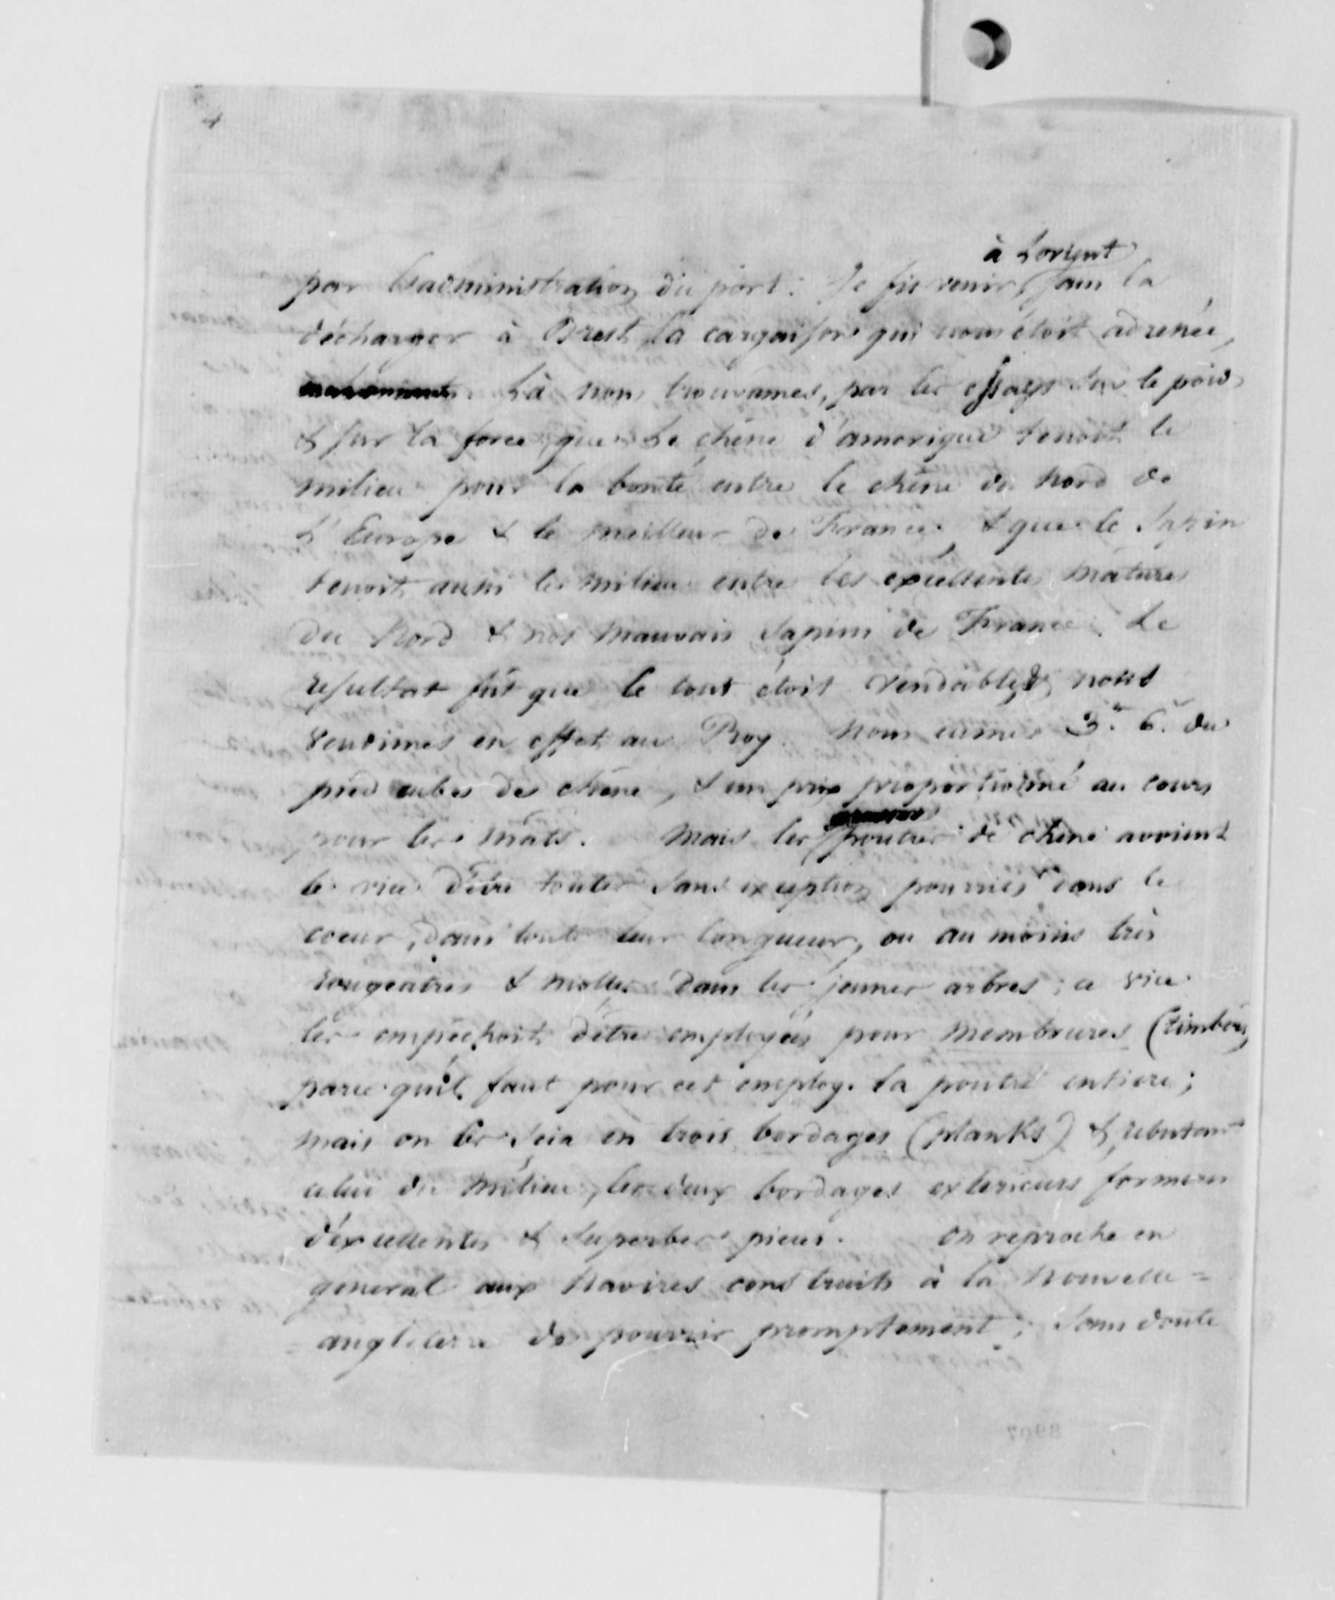 Jacob Vernes to Thomas Jefferson, November 3, 1789, in French